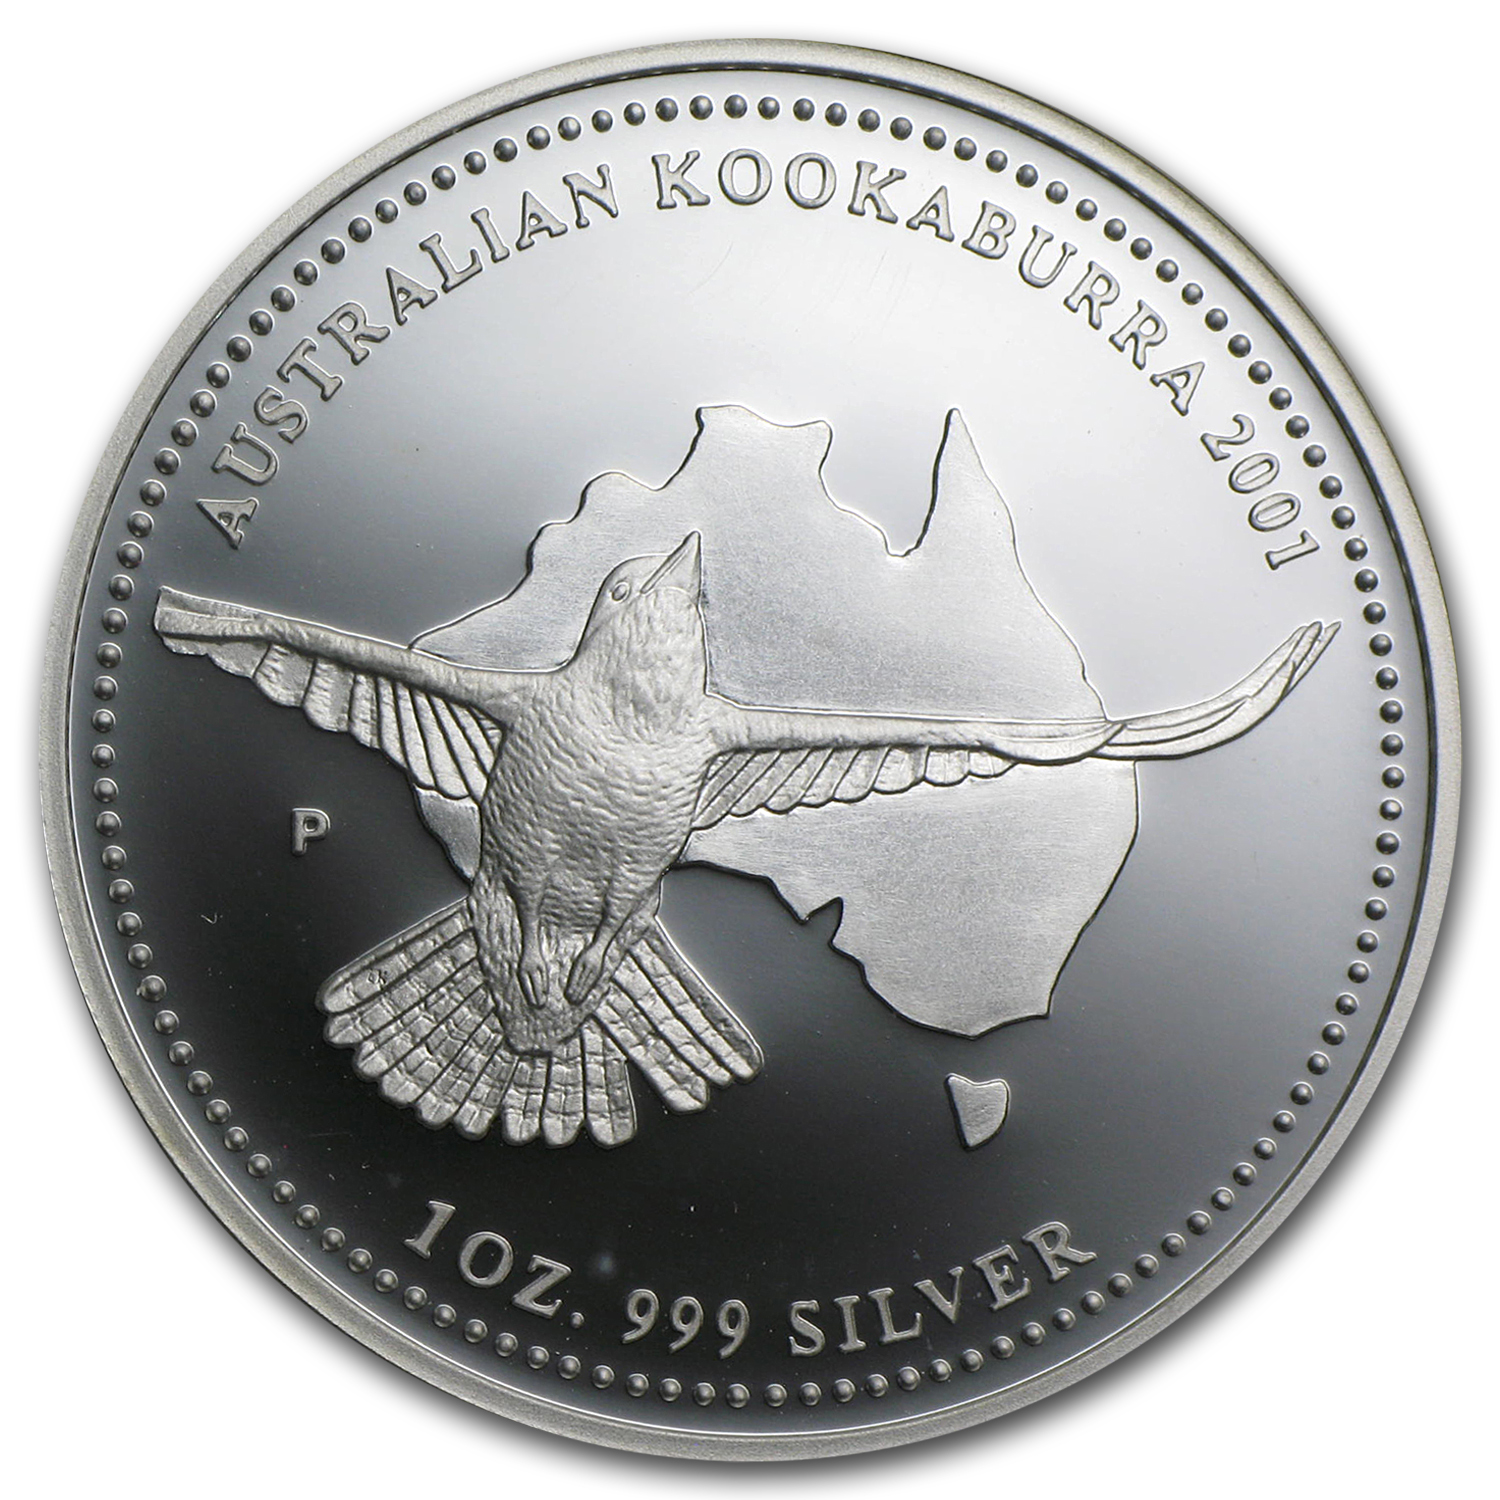 2001 1 oz Silver Australian Kookaburra Proof (Spotty)